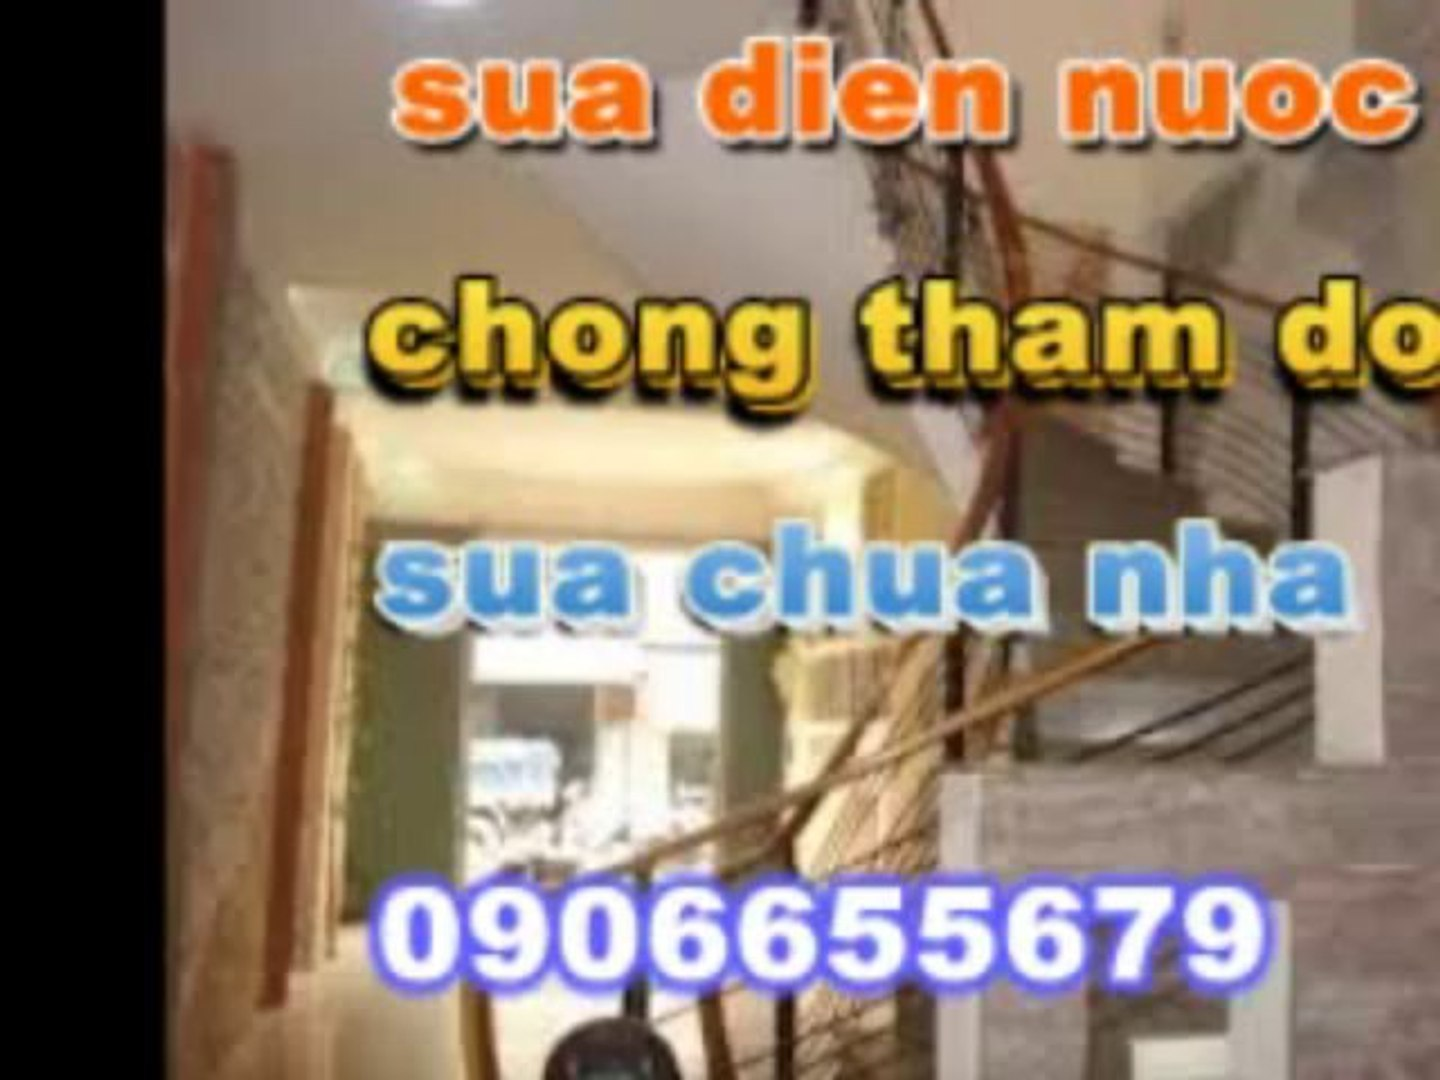 thi cong dien nuoc tai tphcm...0912655679